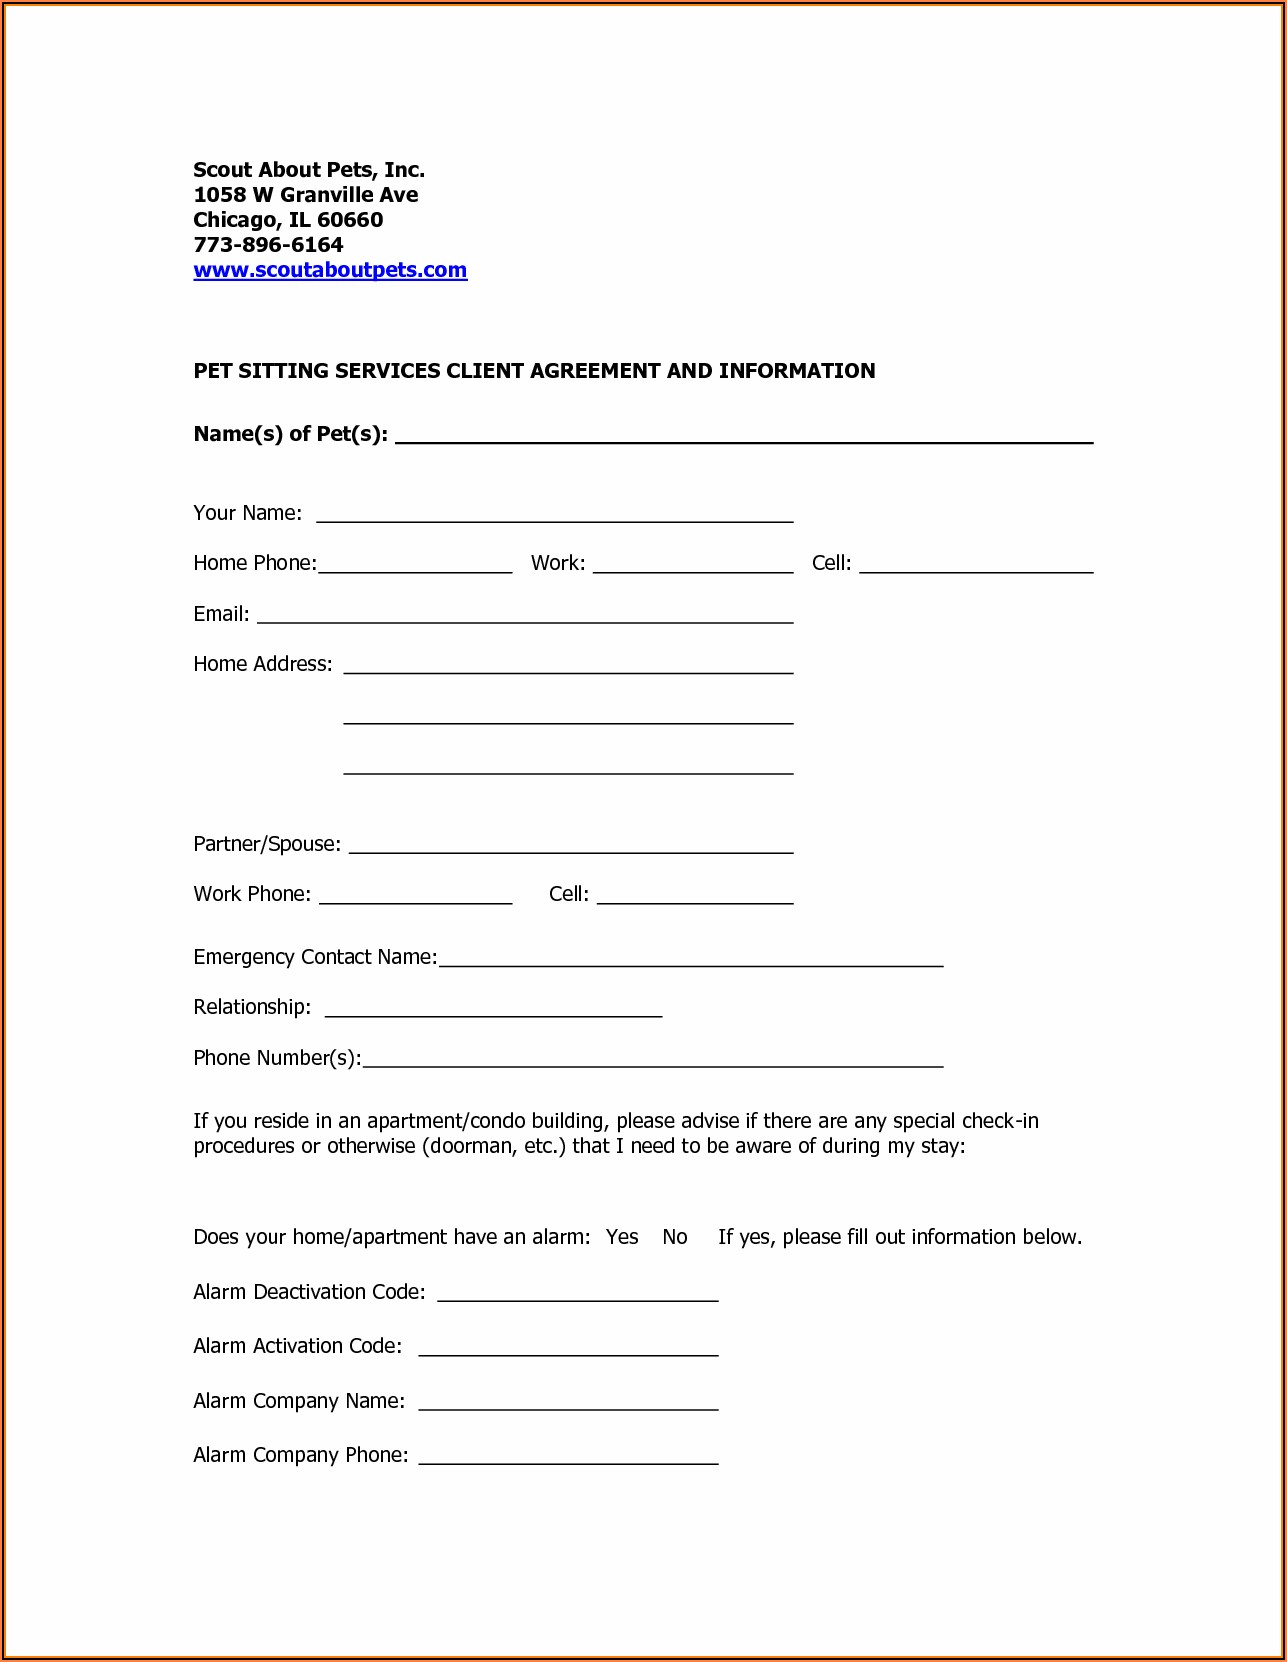 Dog Boarding Registration Form Template